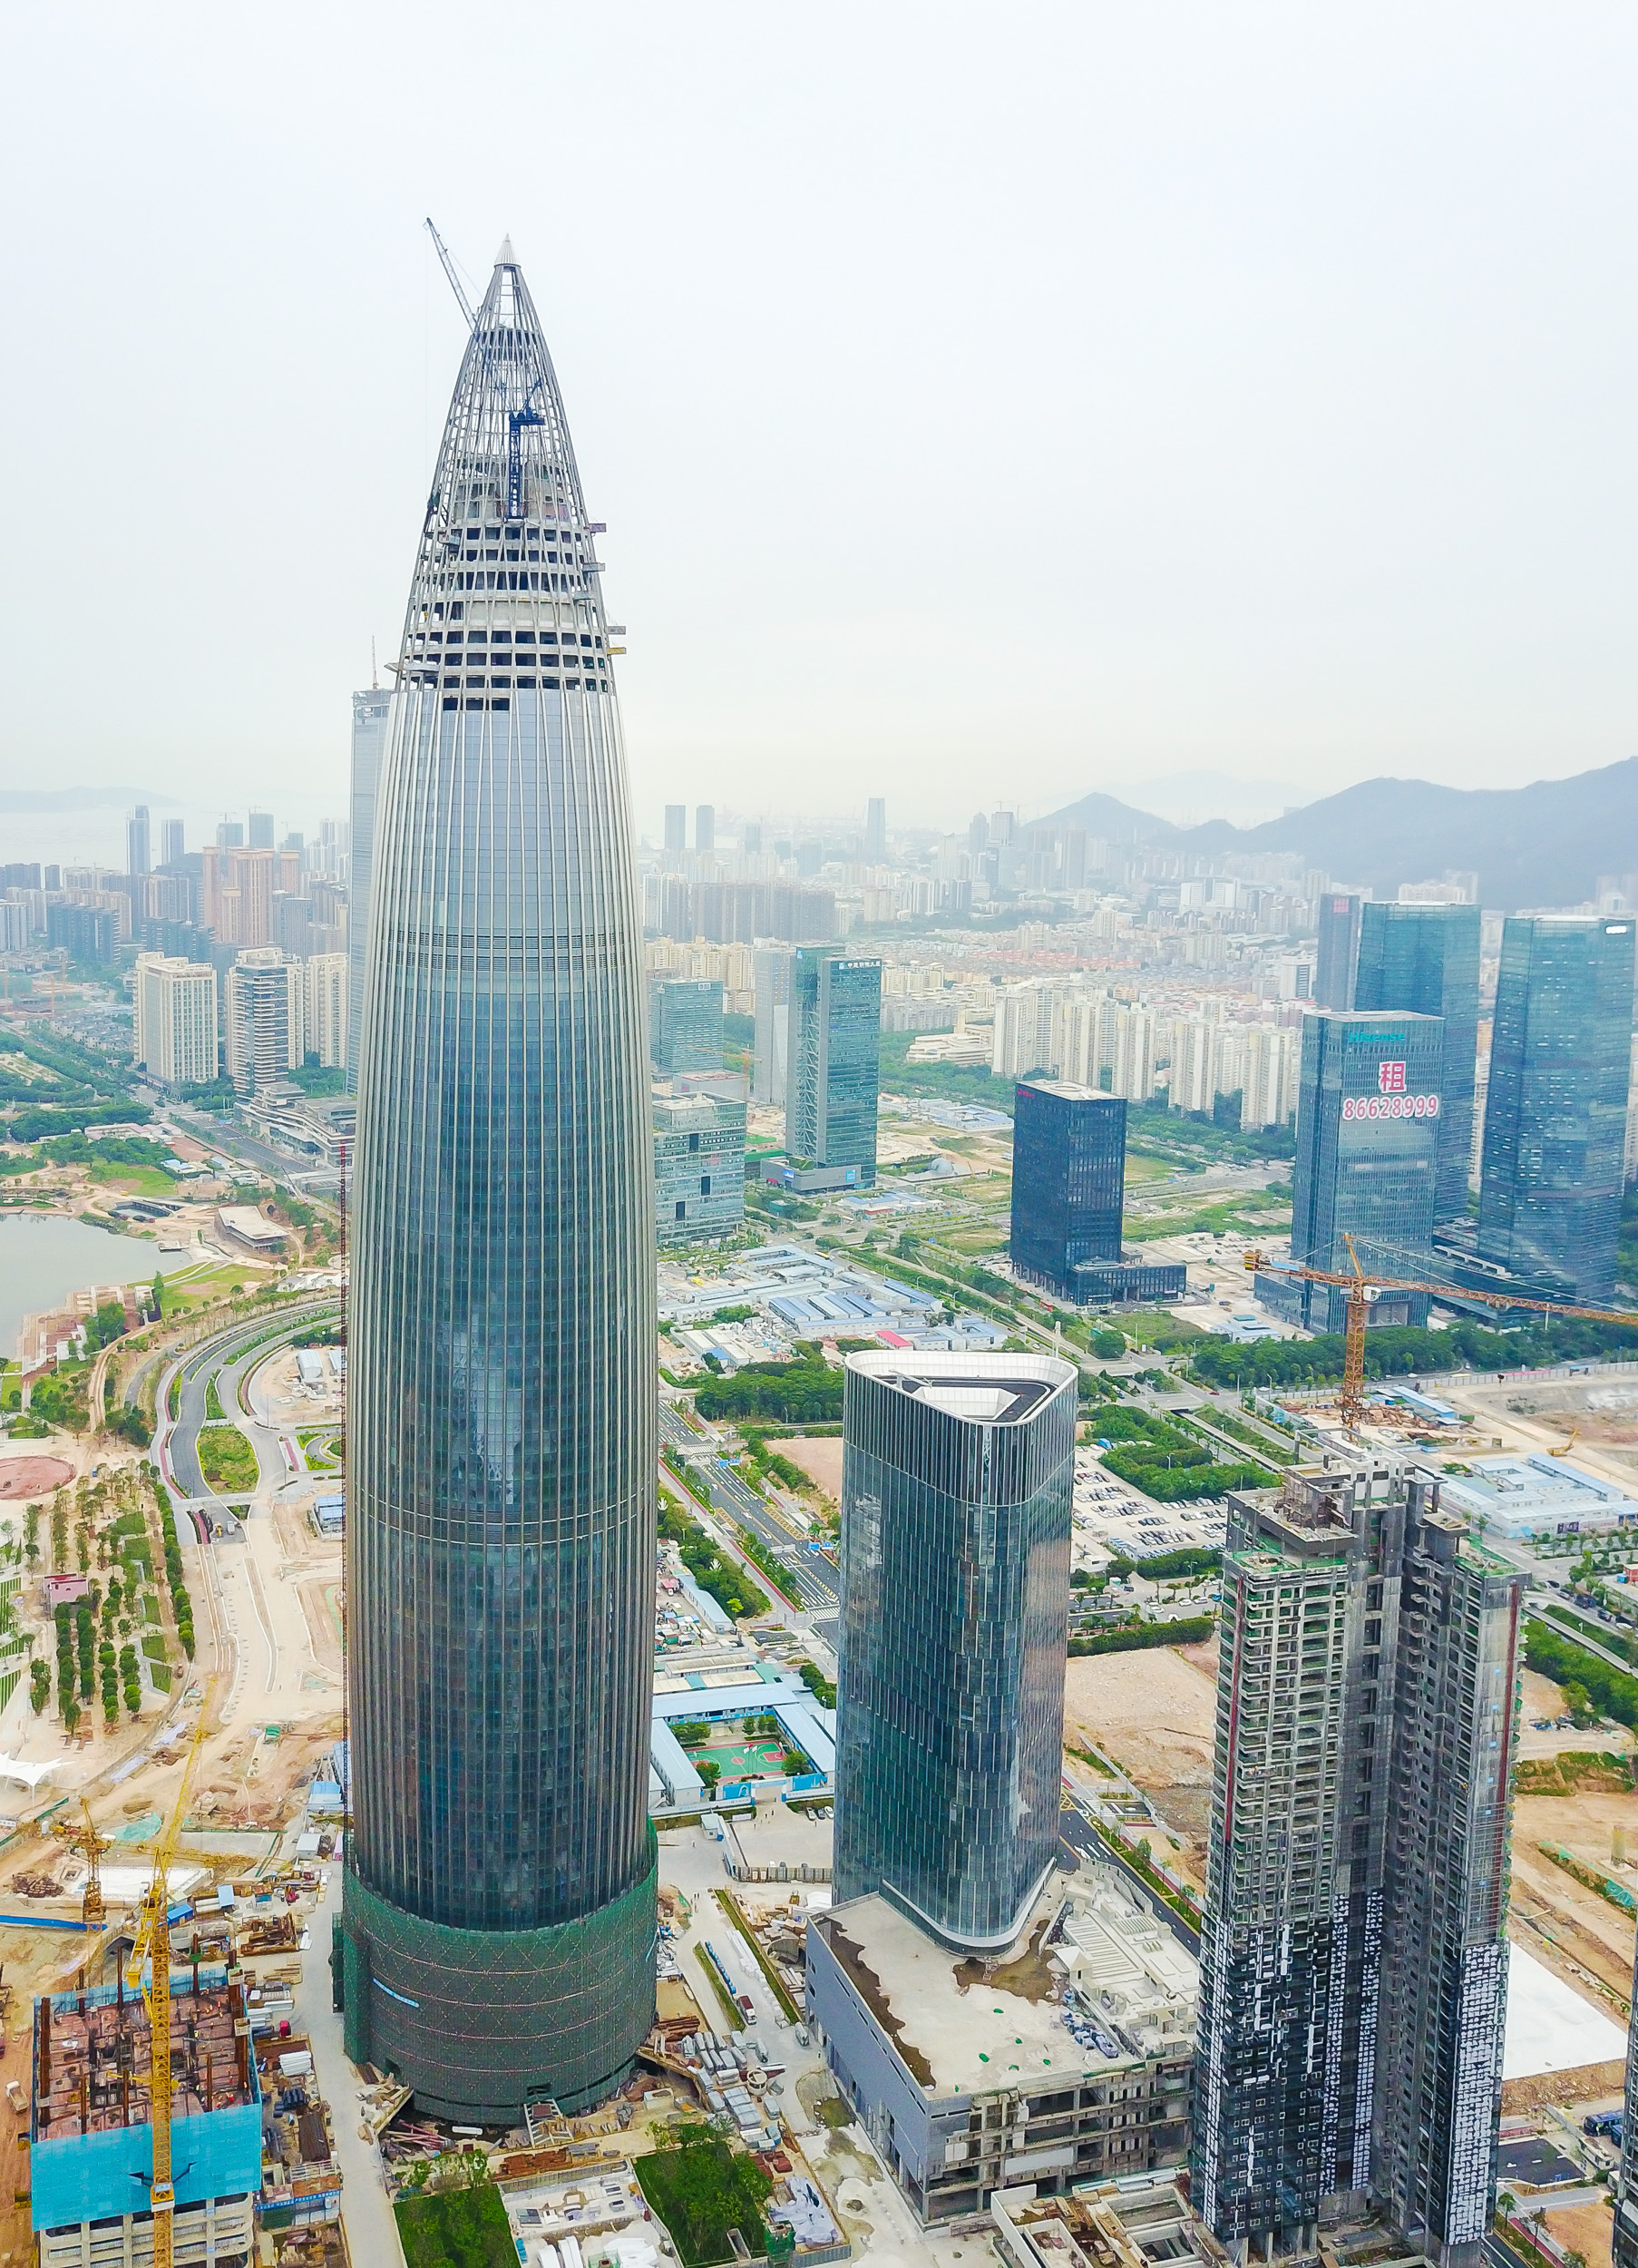 Shenzhen is being called the next Silicon Valley, futuristic buildings are popping up everywhere.